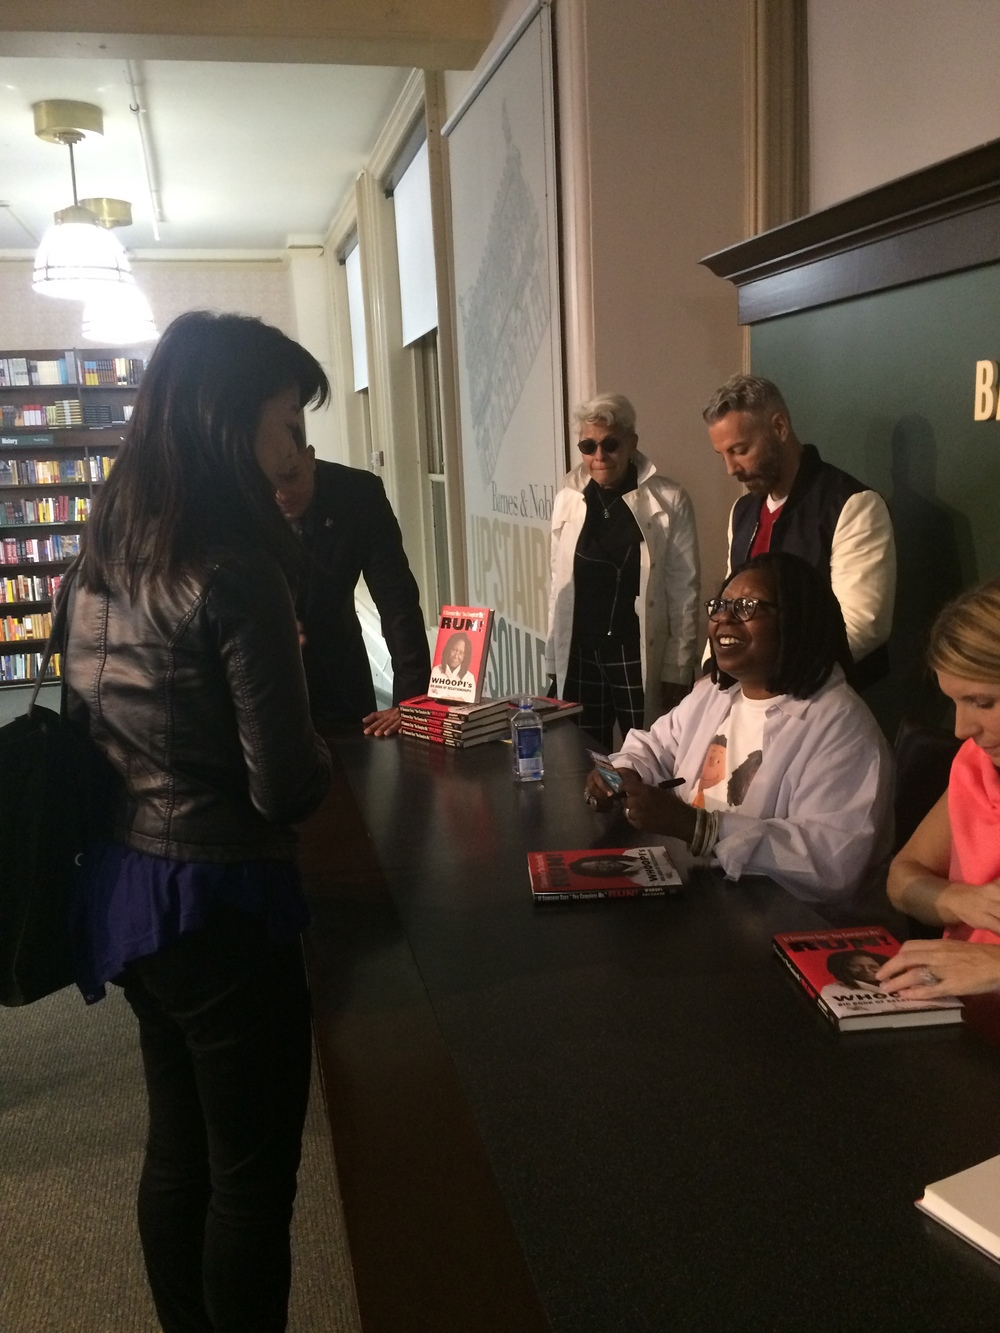 Felicia meeting Whoopi and telling her a bit about Metropolicks.